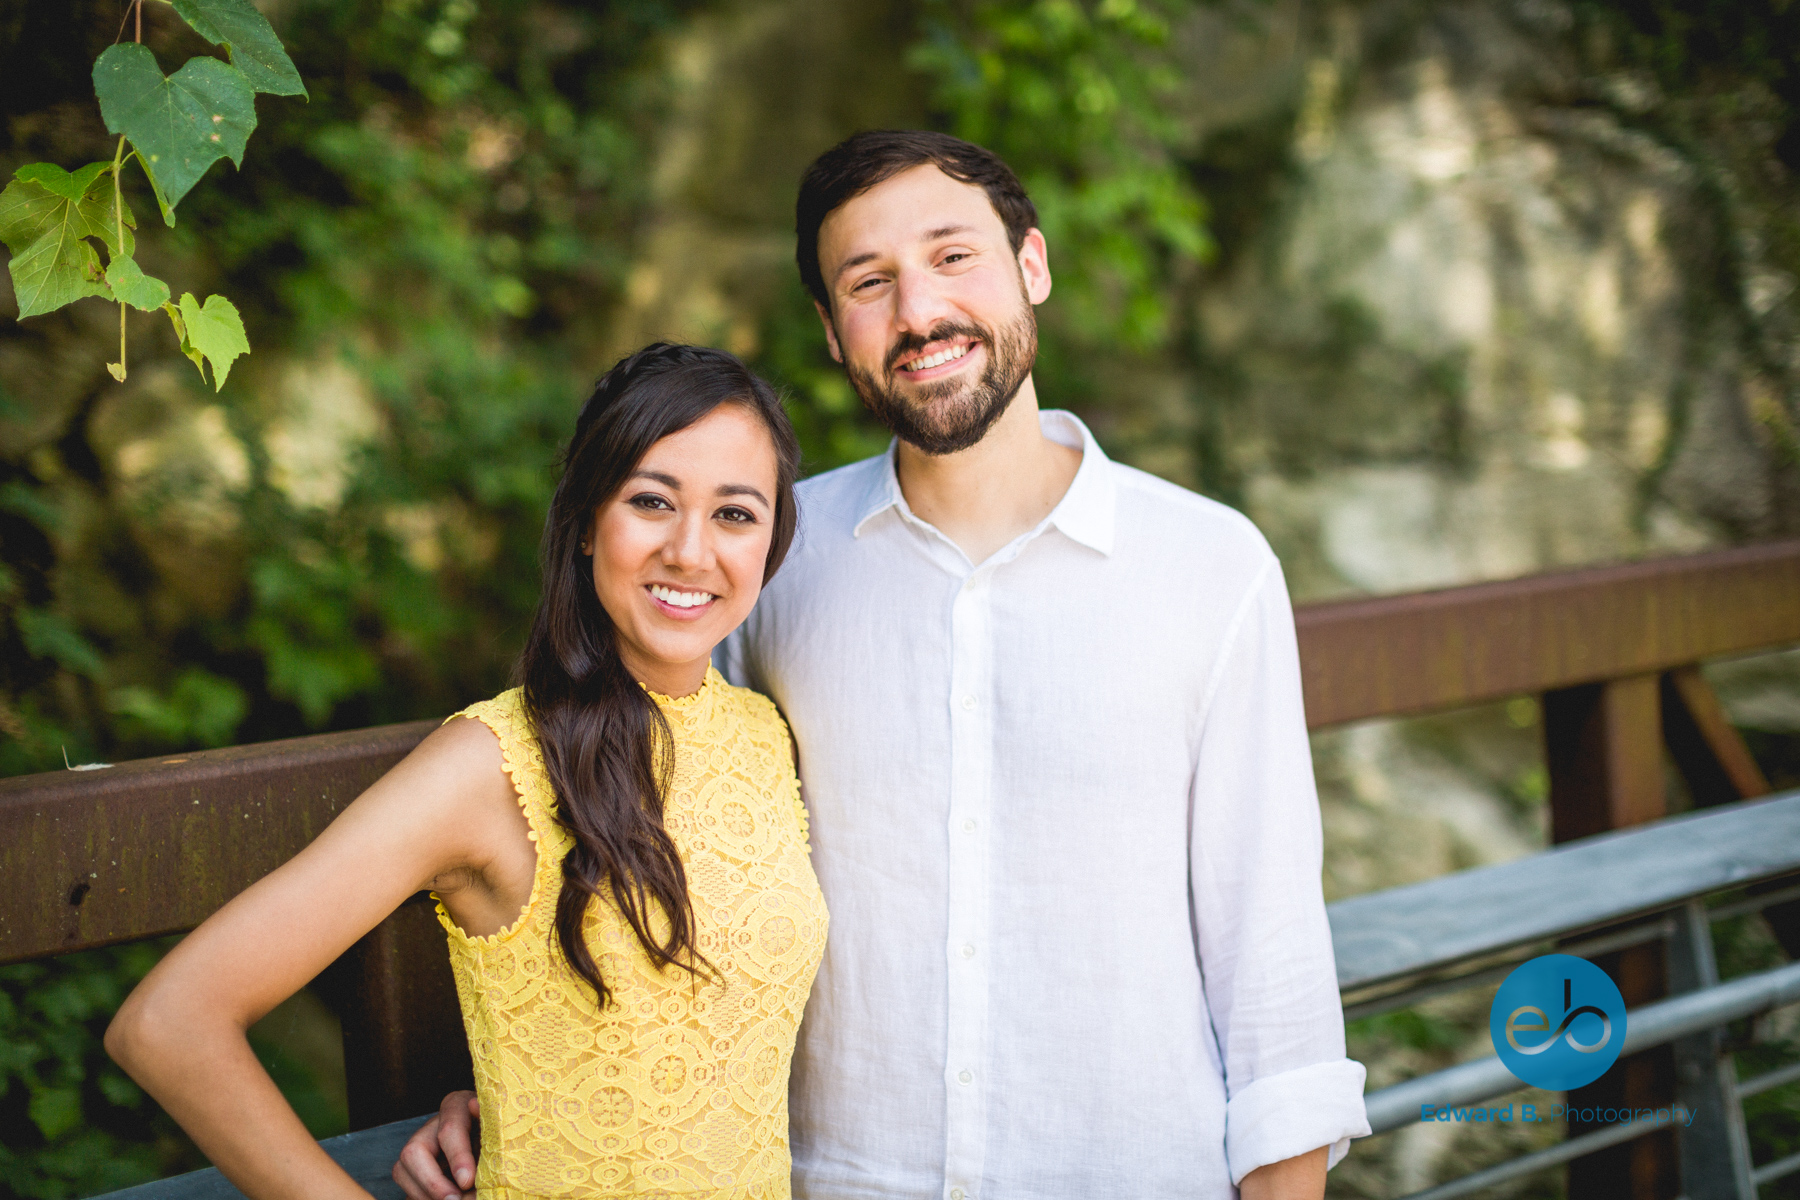 austin-texas-engagement-portraits-9.jpg